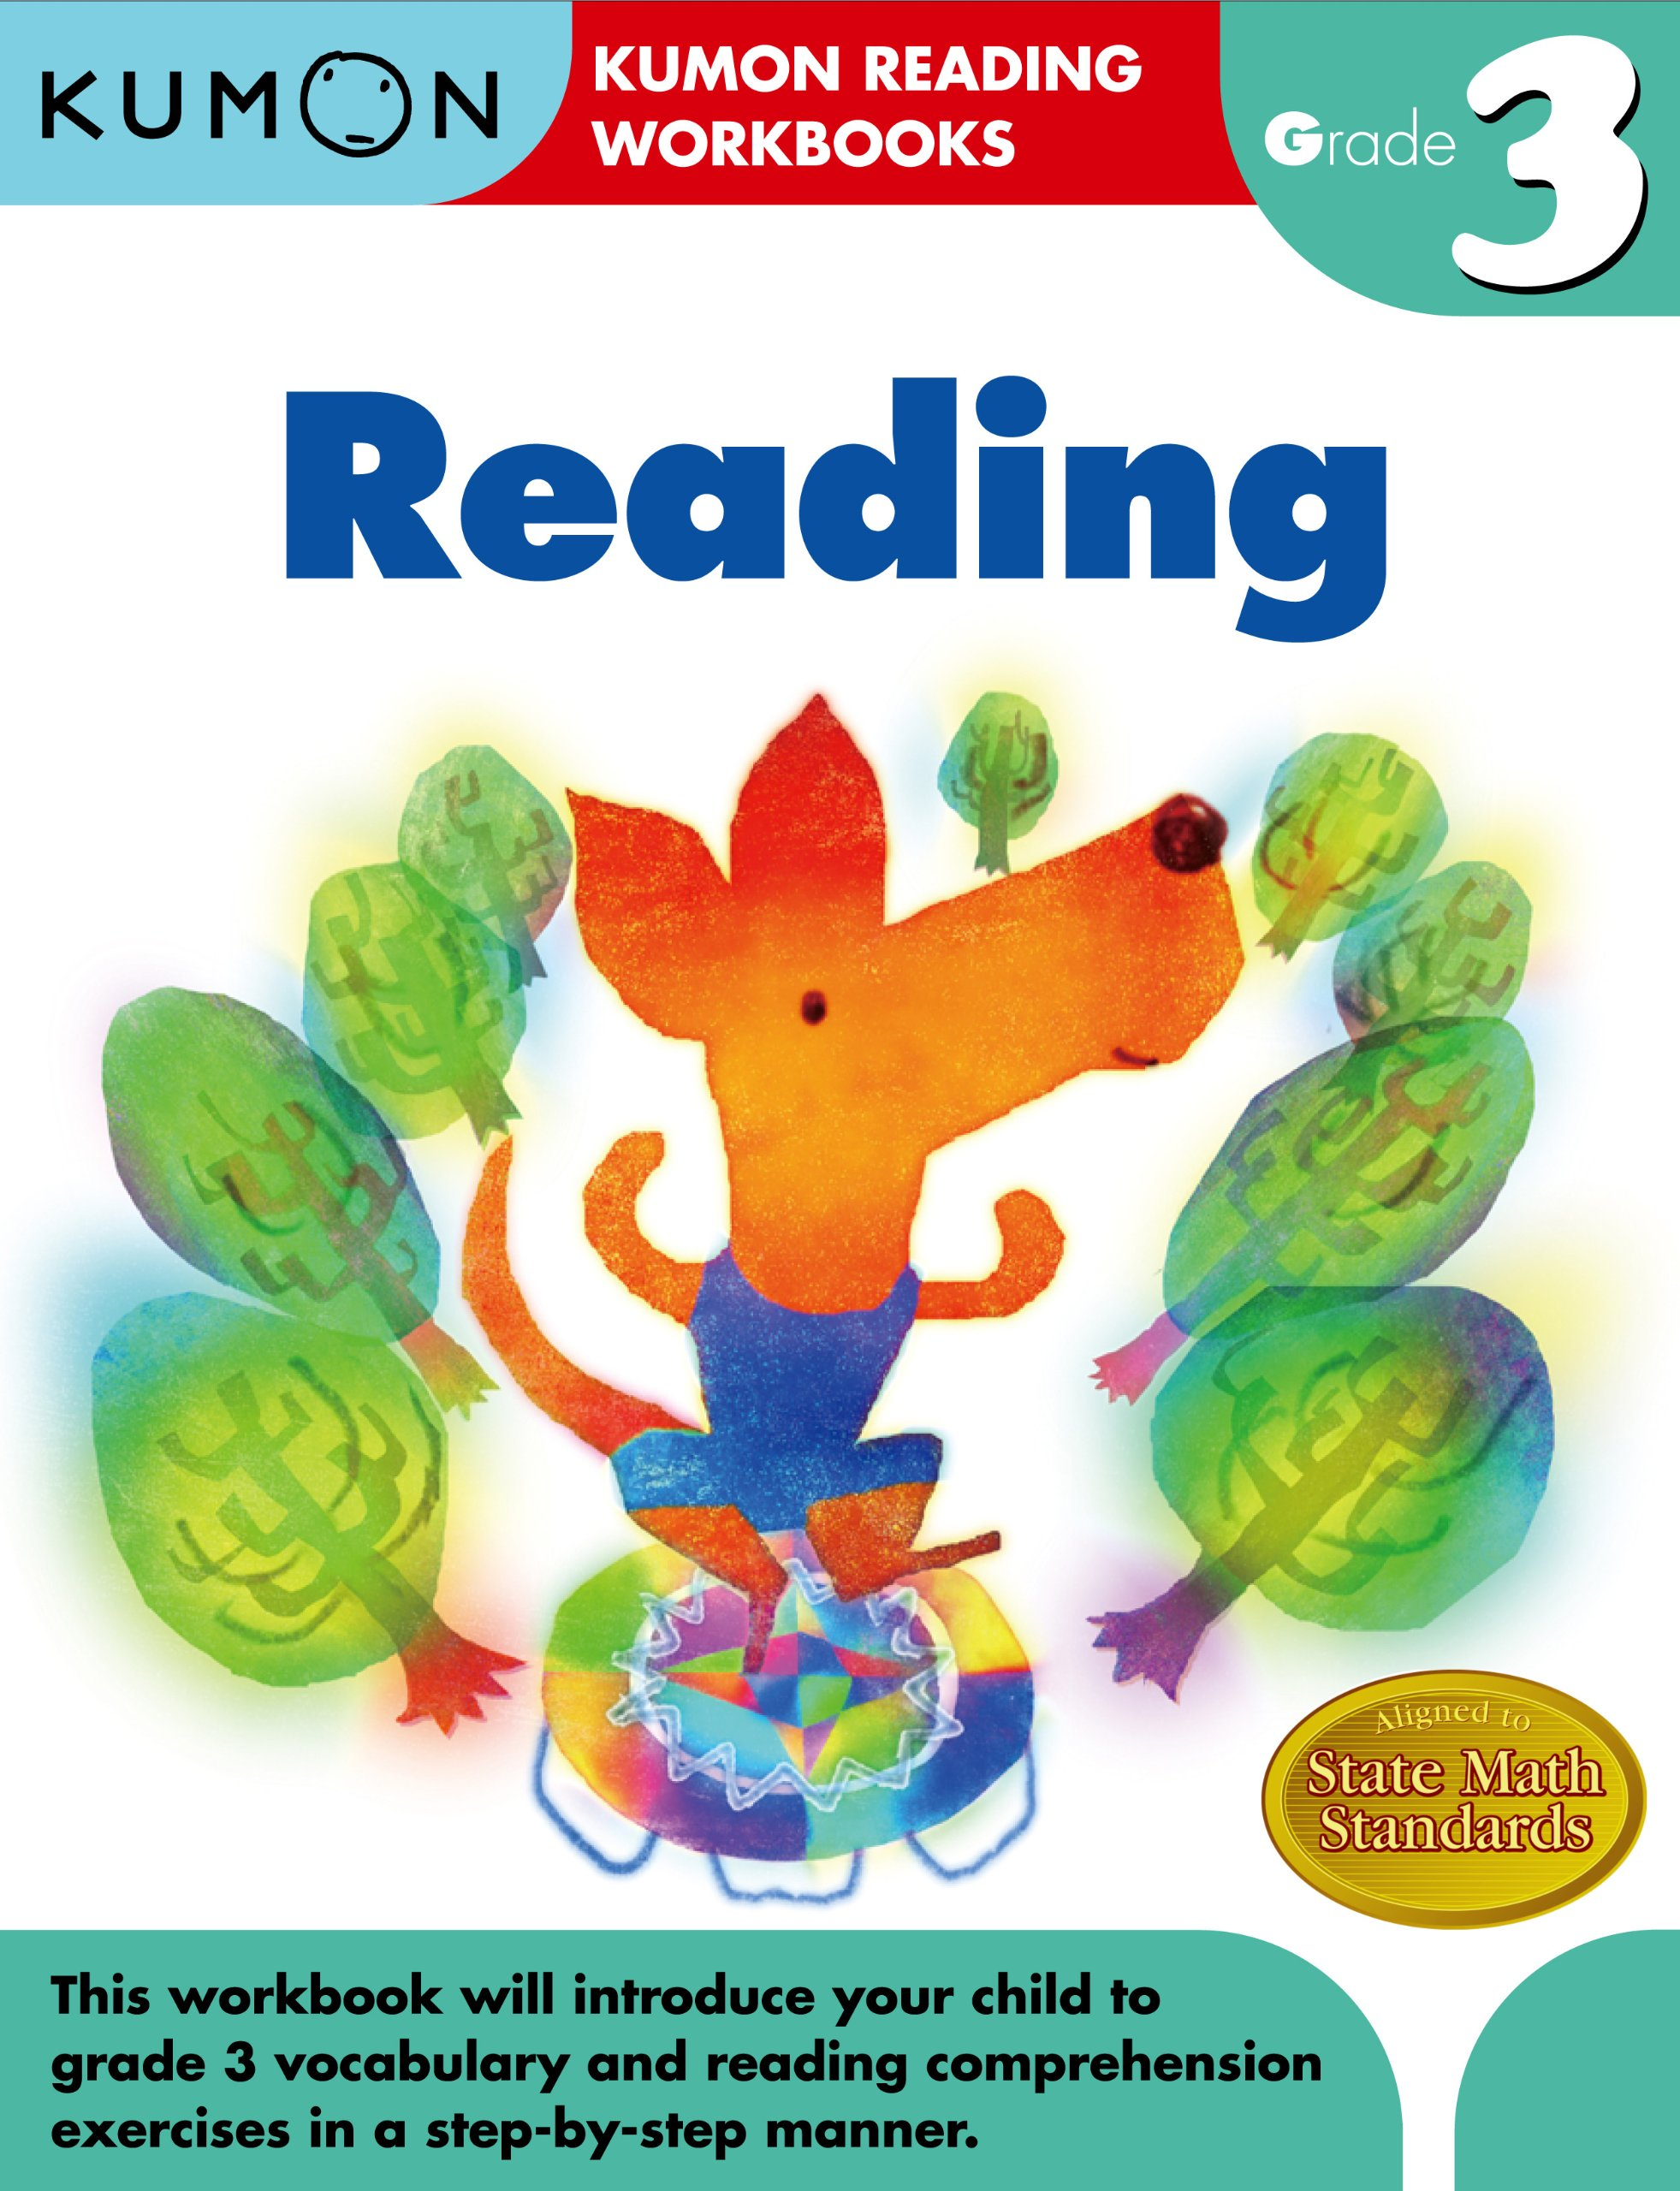 Worksheets Sample Reading Materials For Grade 3 amazon com grade 3 reading kumon workbooks 9781934968772 publishing books